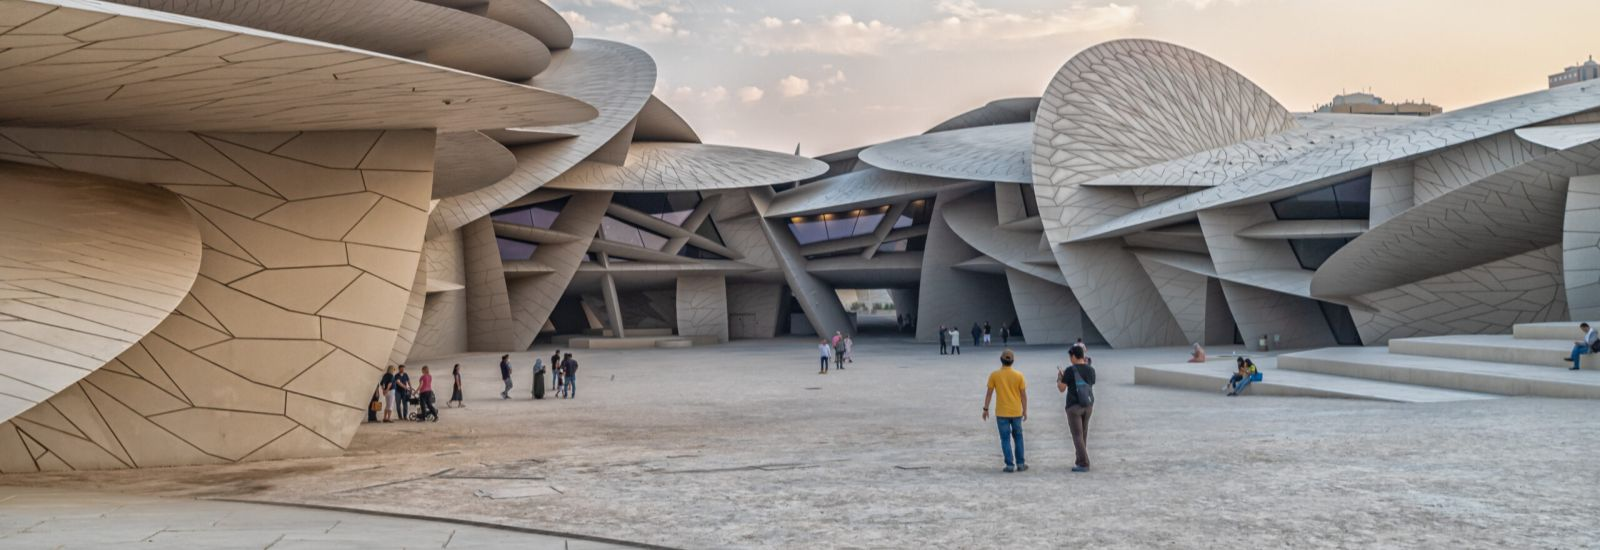 Exterior of the National Museum of Qatar - Modern, Disk Shaped Building